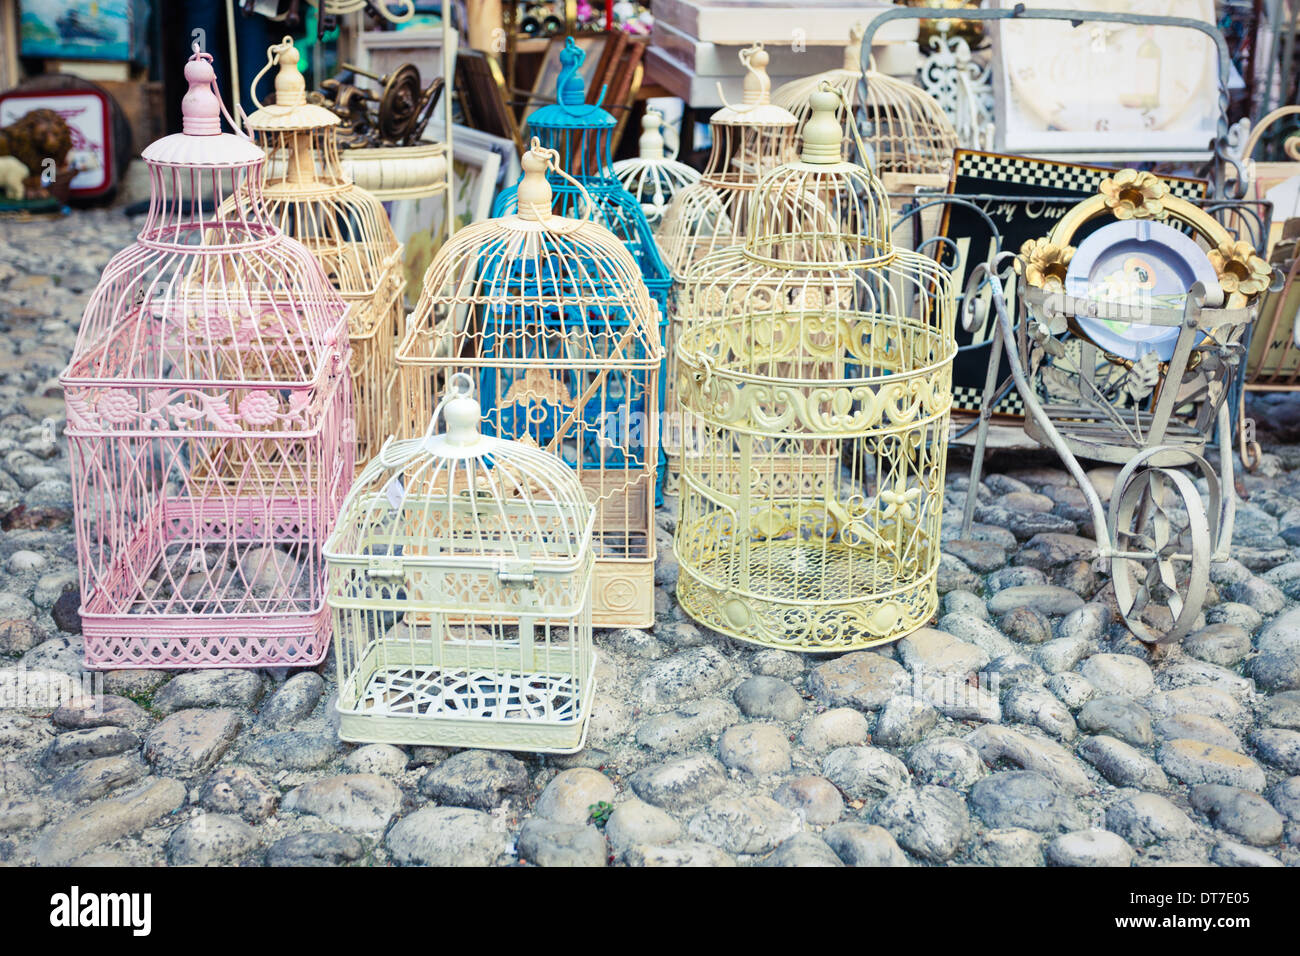 Candid shot of shabby chic vintage cages on a flea market - Stock Image